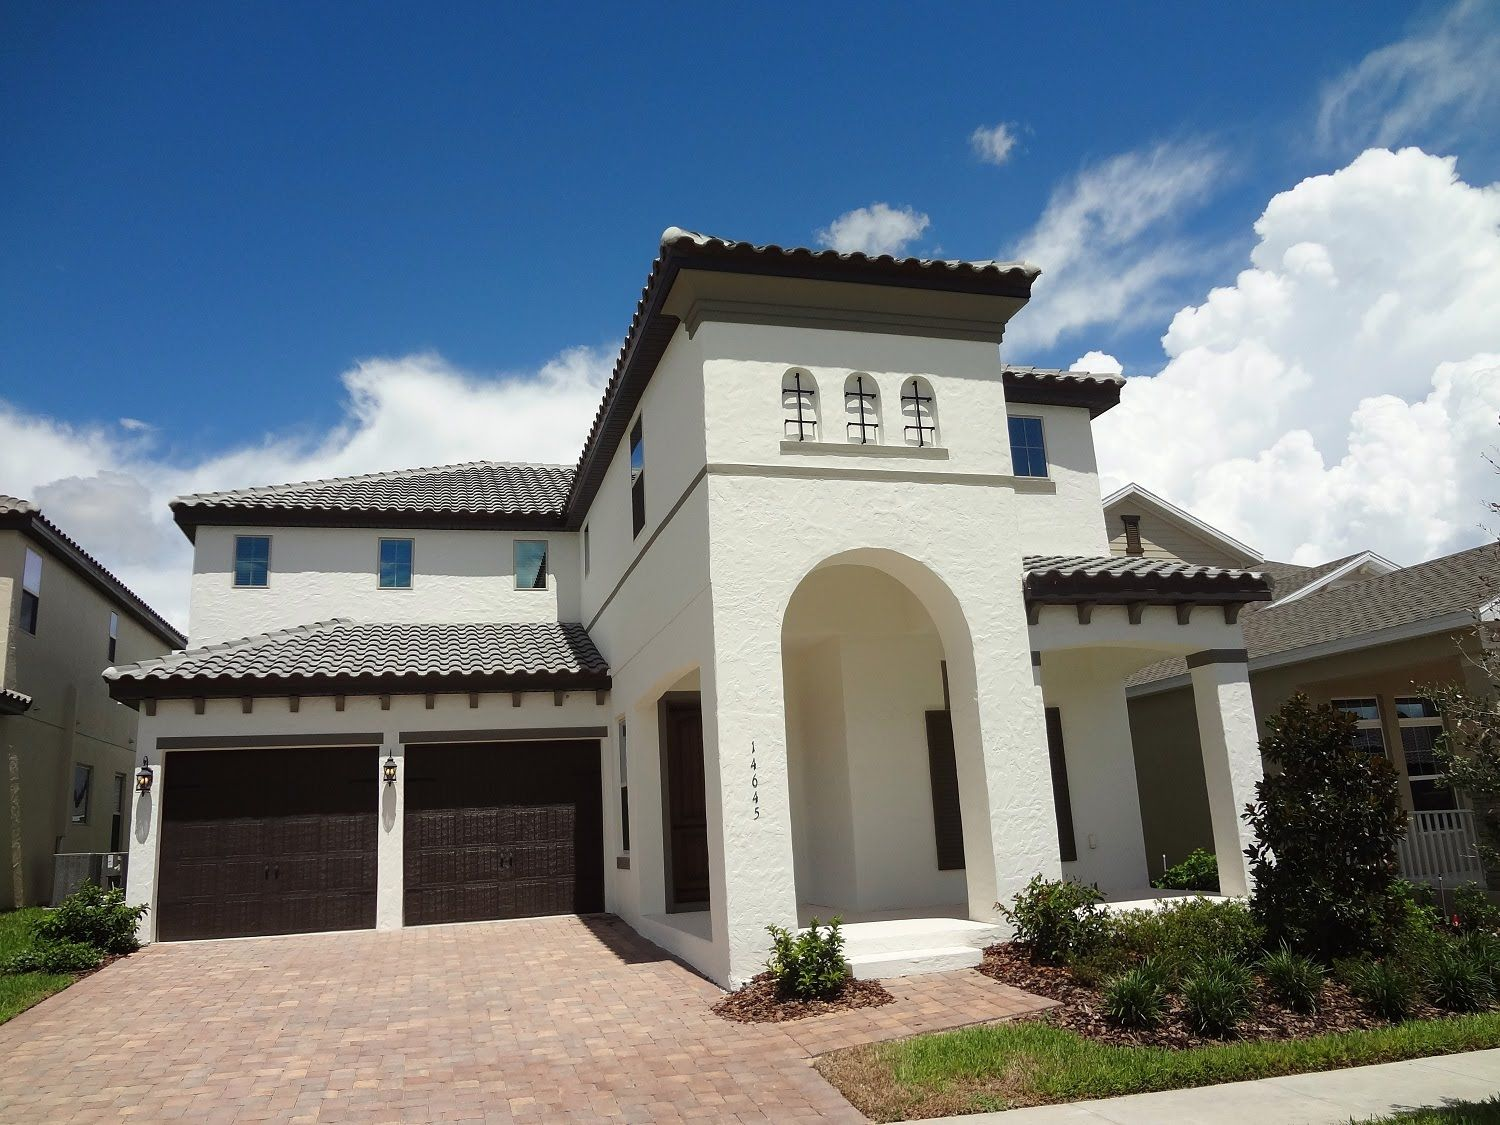 Winter Garden New Homes   Watermark By Meritage Homes   Thoreau Inventor.